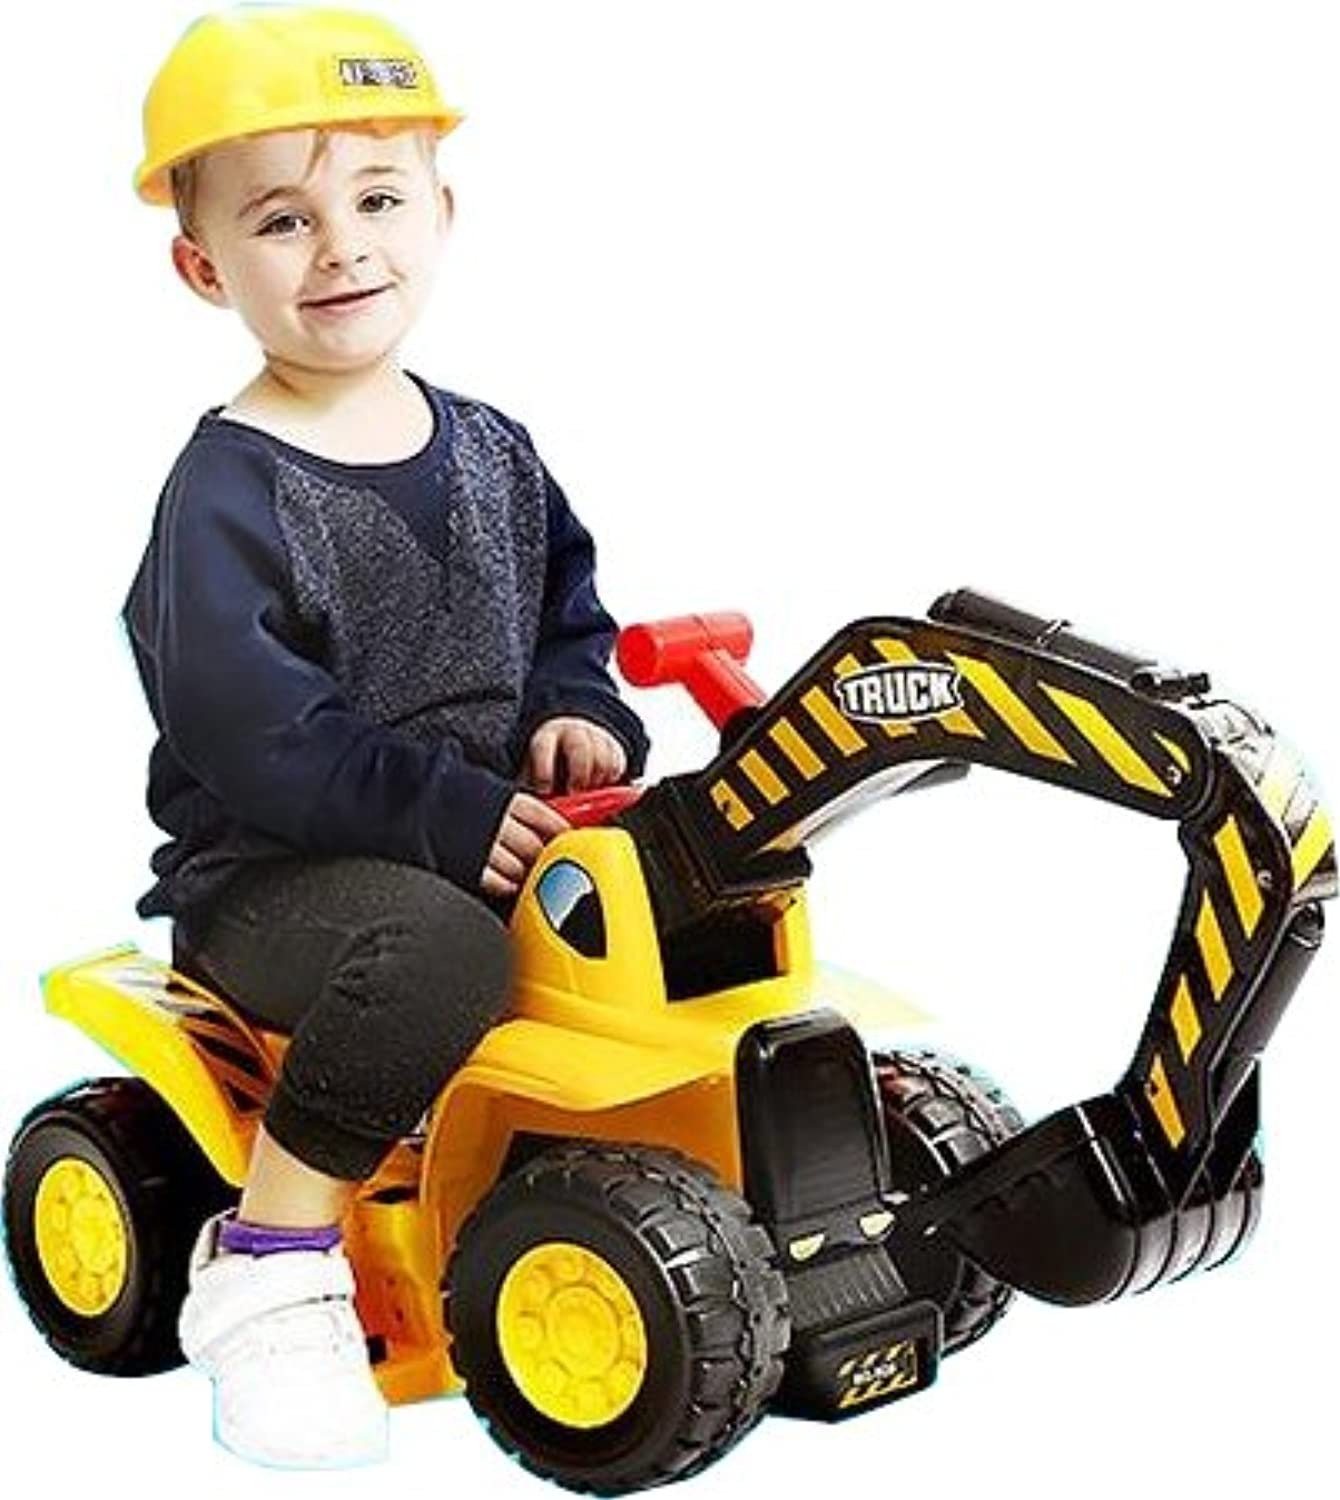 おもちゃTractors for Kids ride-on Excavator – 音楽サウンドDiggerスクーターTractorおもちゃBulldozer Includesヘルメットwith Rocks – Ride On Tractor Pretend Play – 幼児用トラクターConstruction Truck – by play22